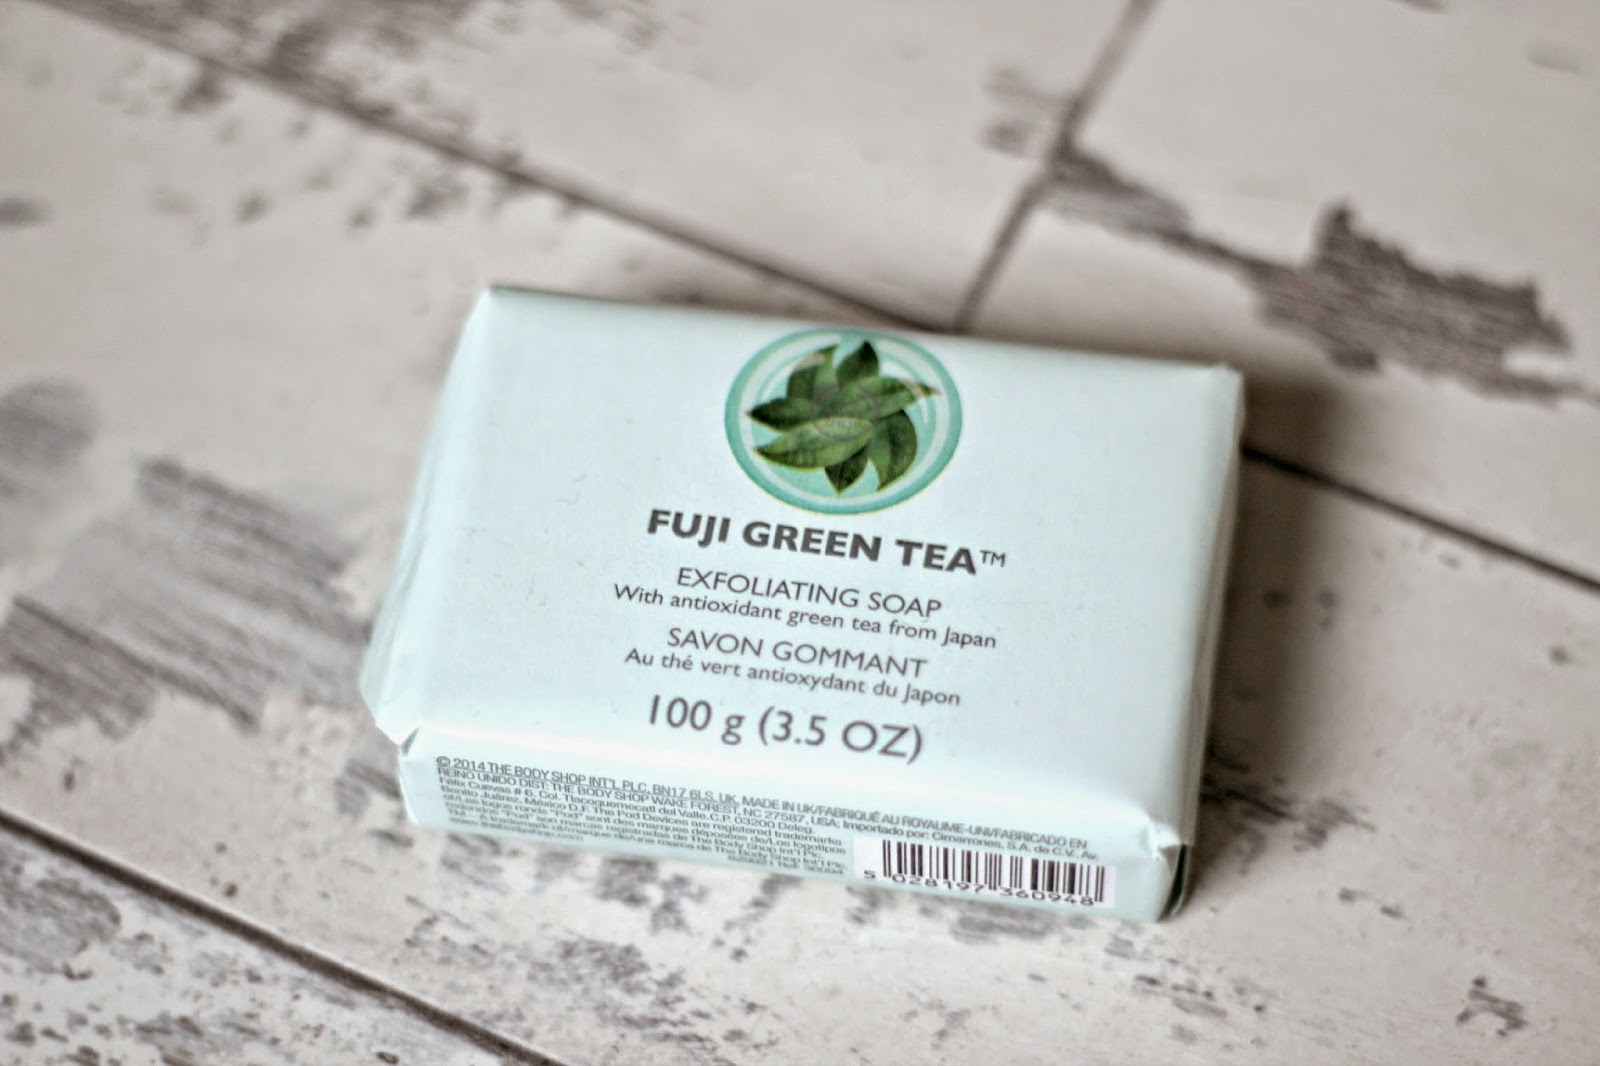 xa-phong-thebodyshop-fuji-green-tea-exfoliating-soap-07